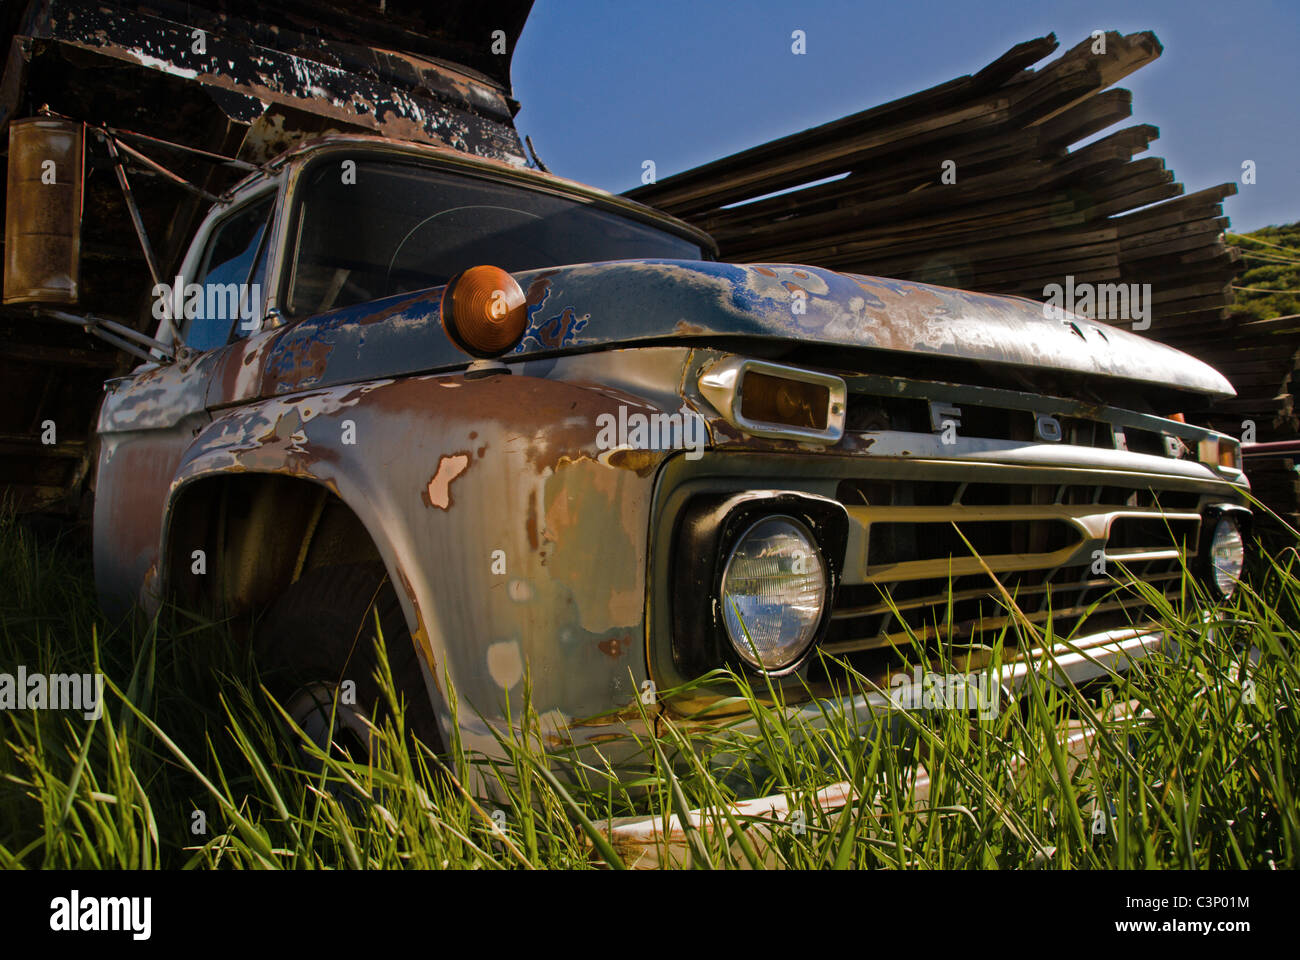 Seen better days! - Stock Image